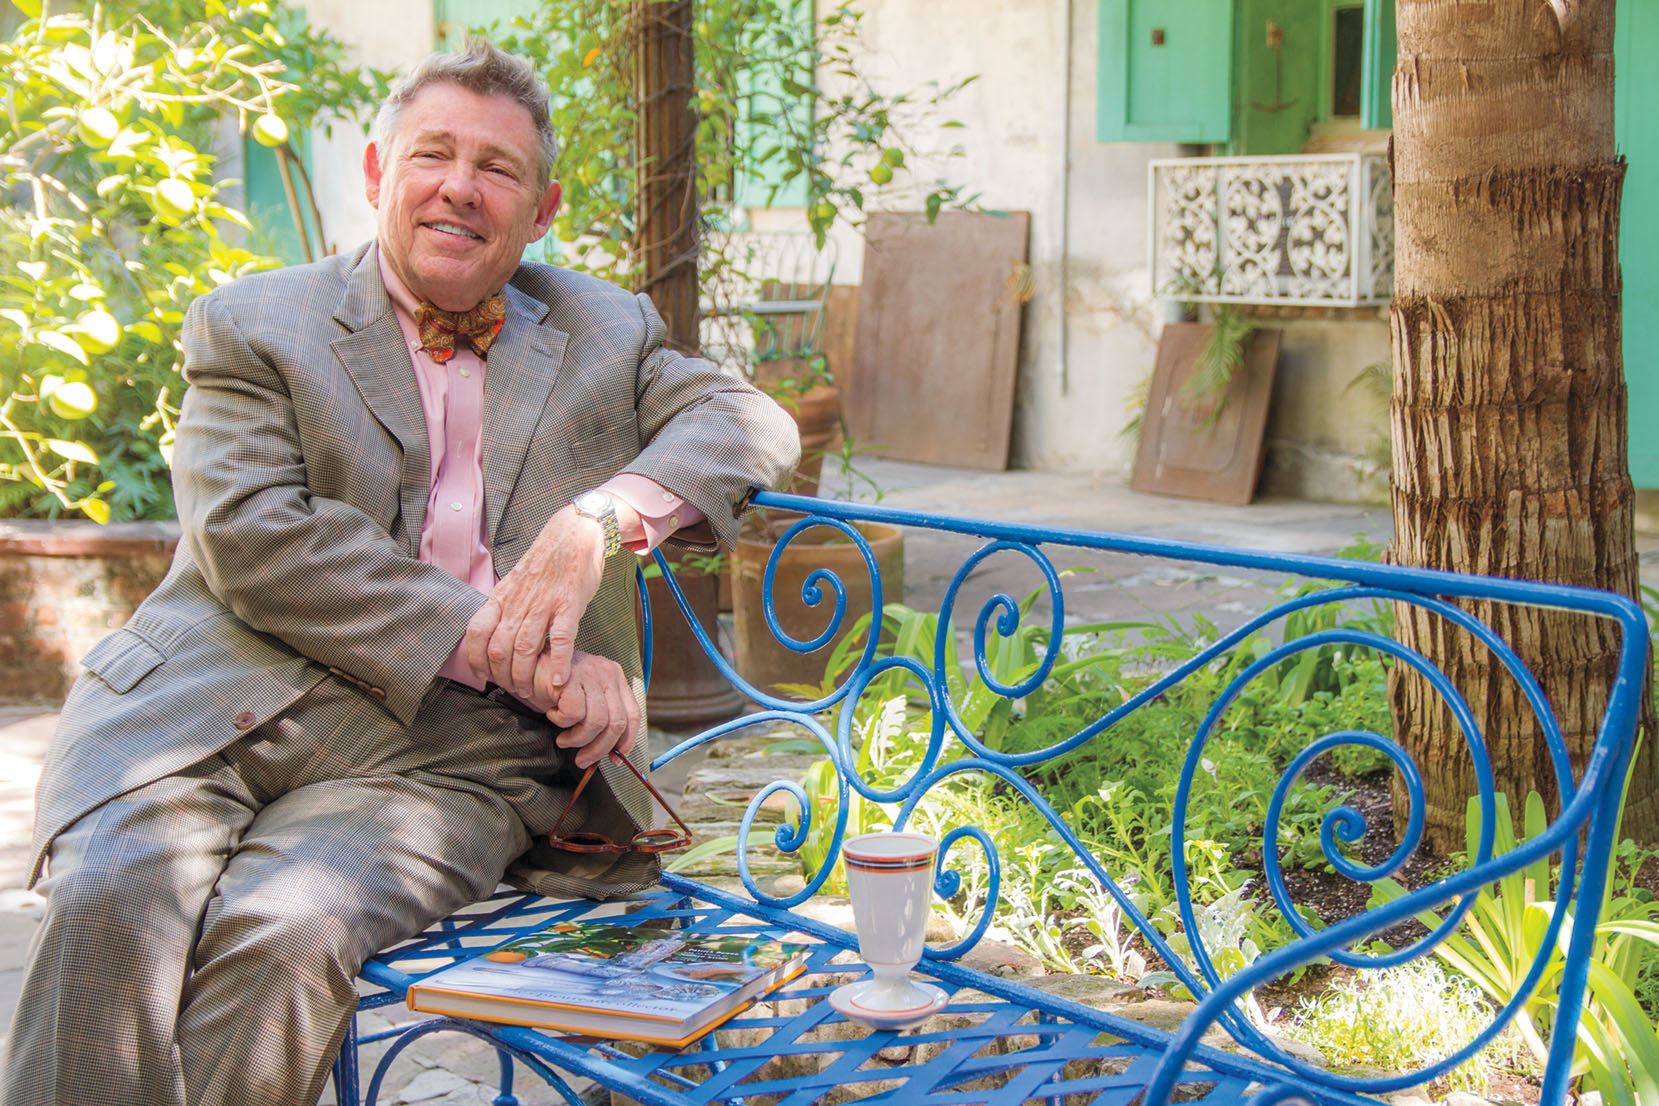 Portrait of New Orleans interior decorator and antiques shop owner Patrick Dunne, wearing a gray suit with pink shirt, sitting outside a wrought-iron bench painted bright blue